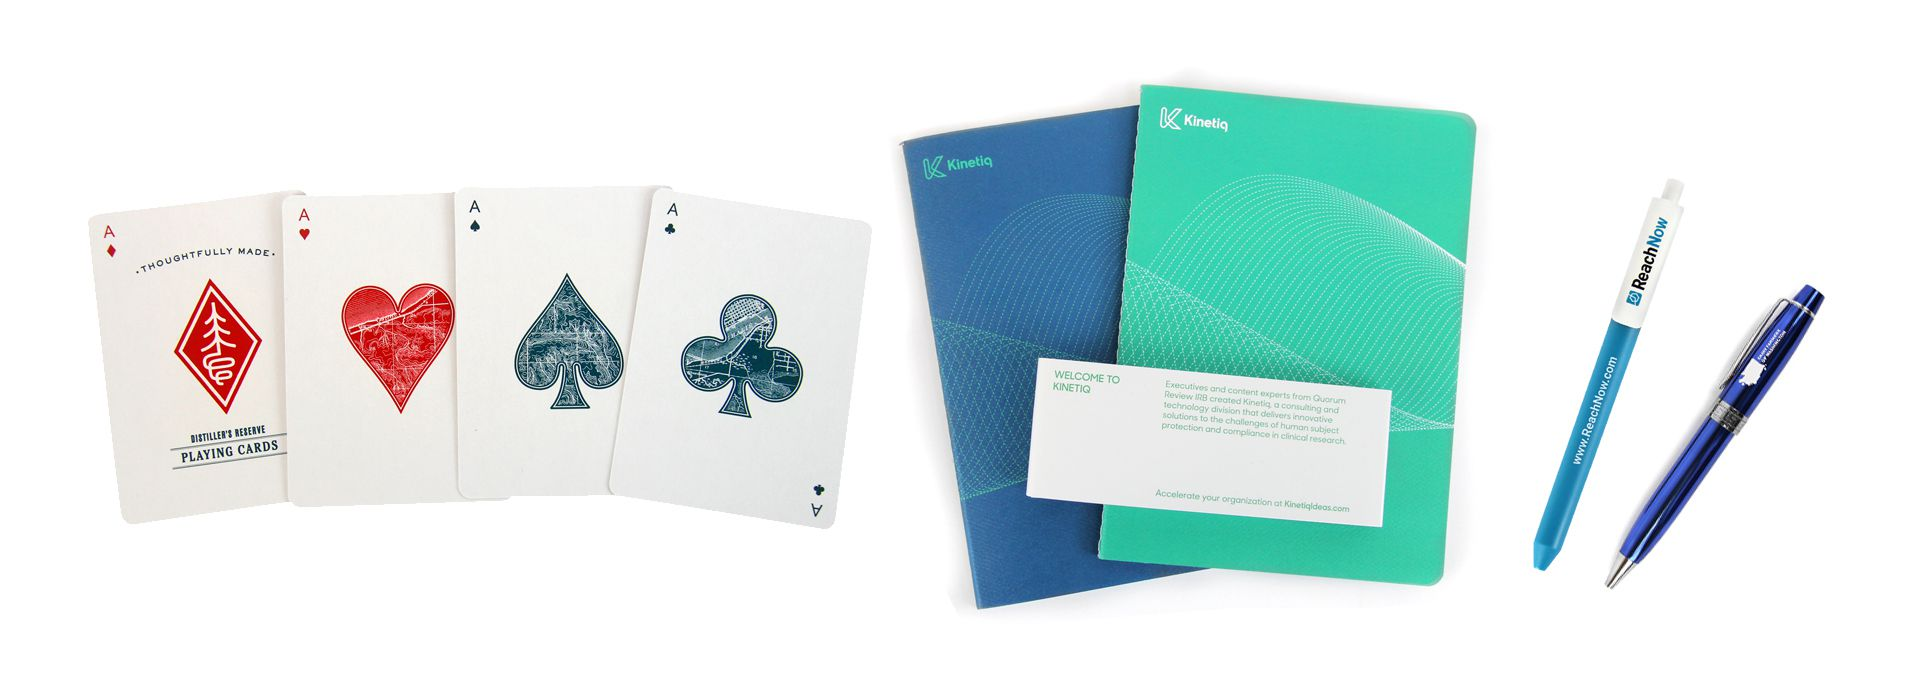 Custom Printed Promotional Paper Products Seattle